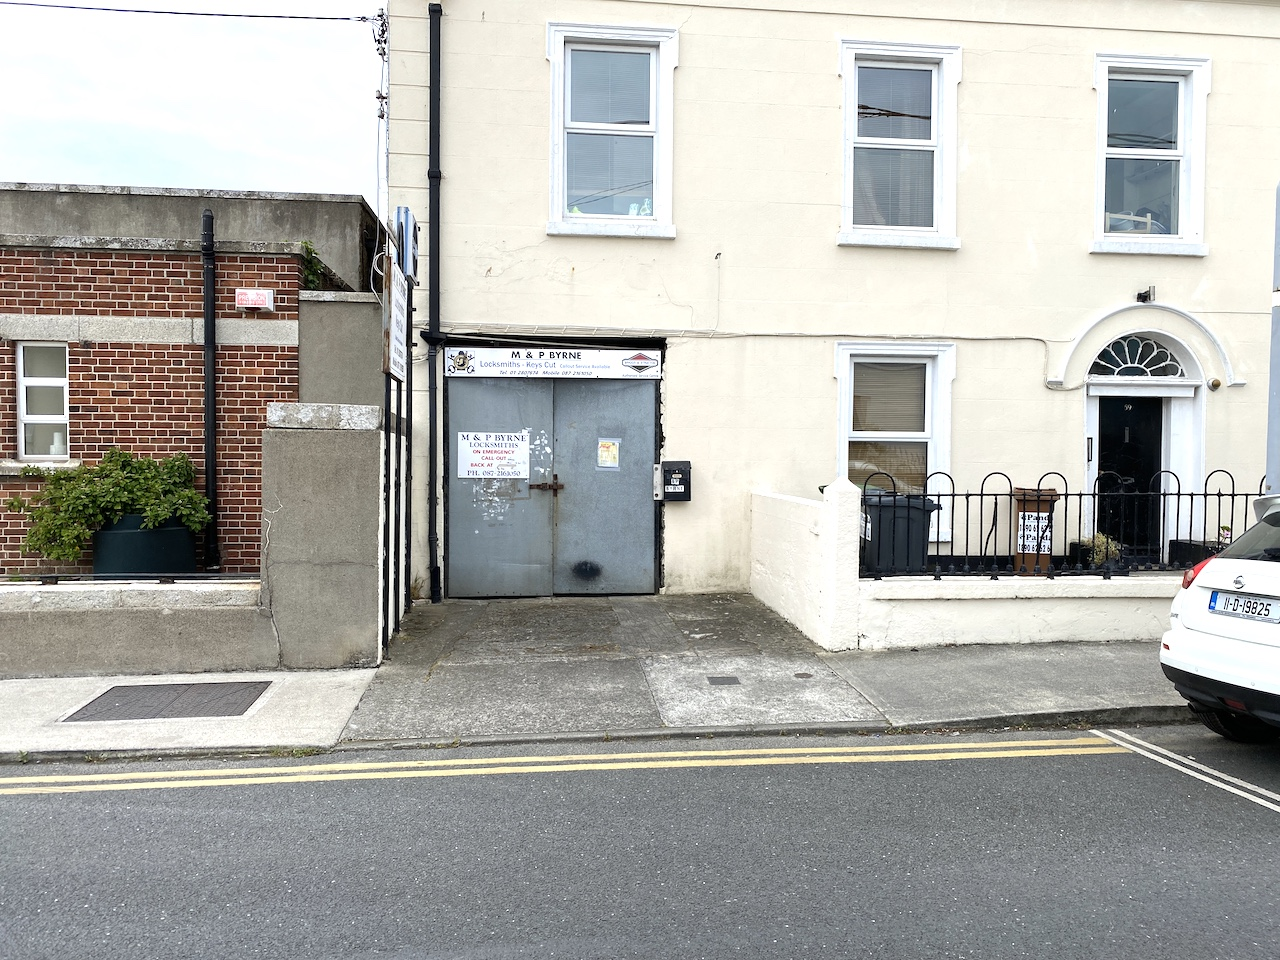 FOR SALE Dun Laoghaire – Workshop/Warehouse/Development Site subject to PP